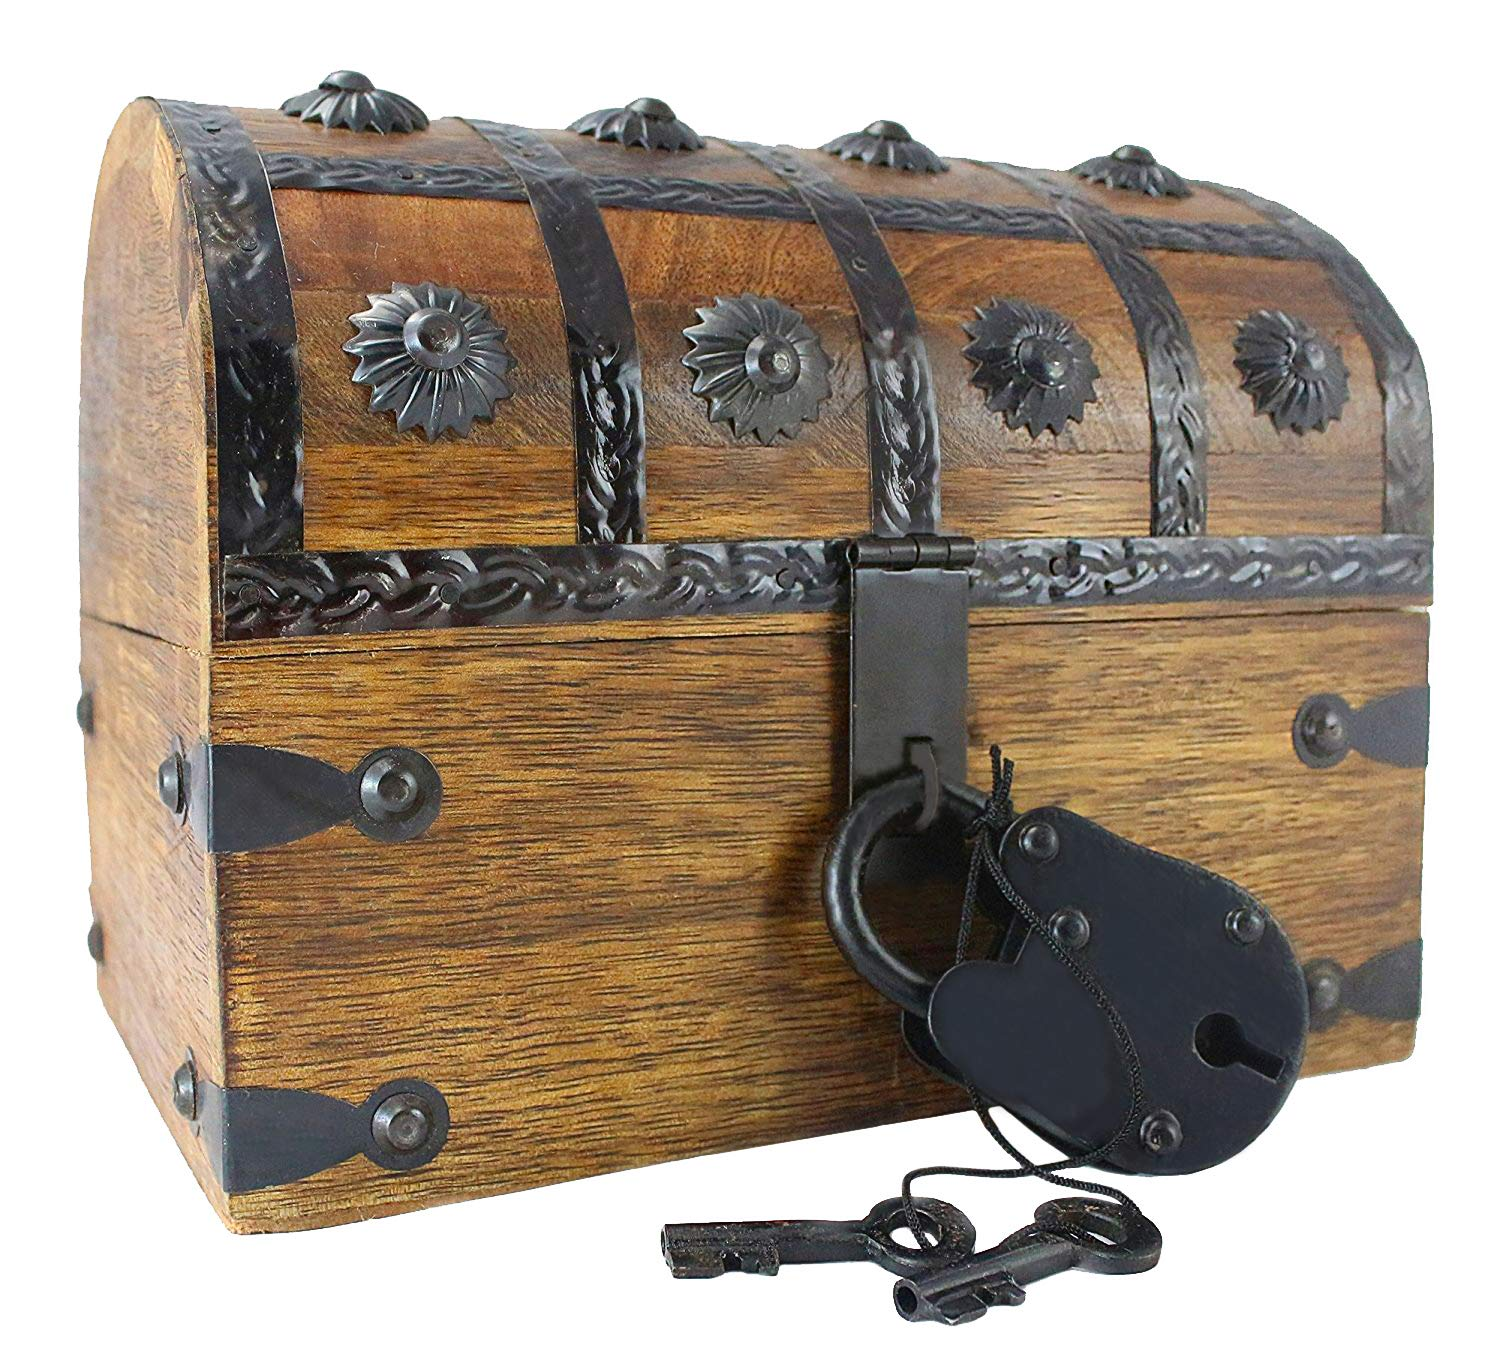 """Treasure Chest Pirate Toy Box for Kids 8"""" x 6"""" x 6"""" Large Blackbeard Model Locking Nautical Antique Style Pirate Party Accessory by Well Pack Box"""